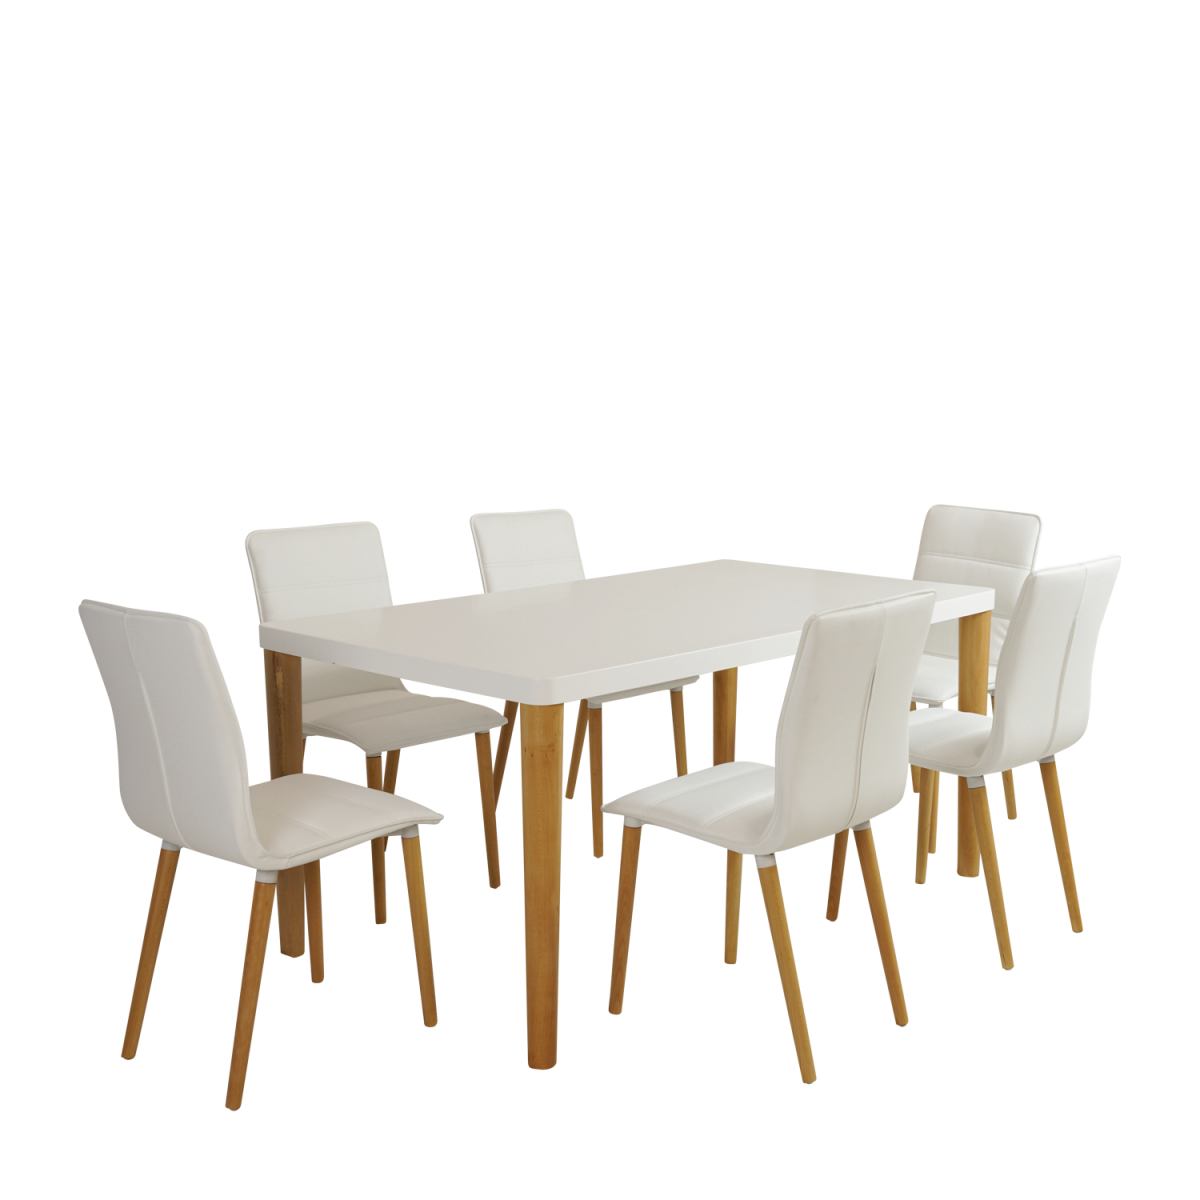 Nordic Dining Table With Chair 7pc